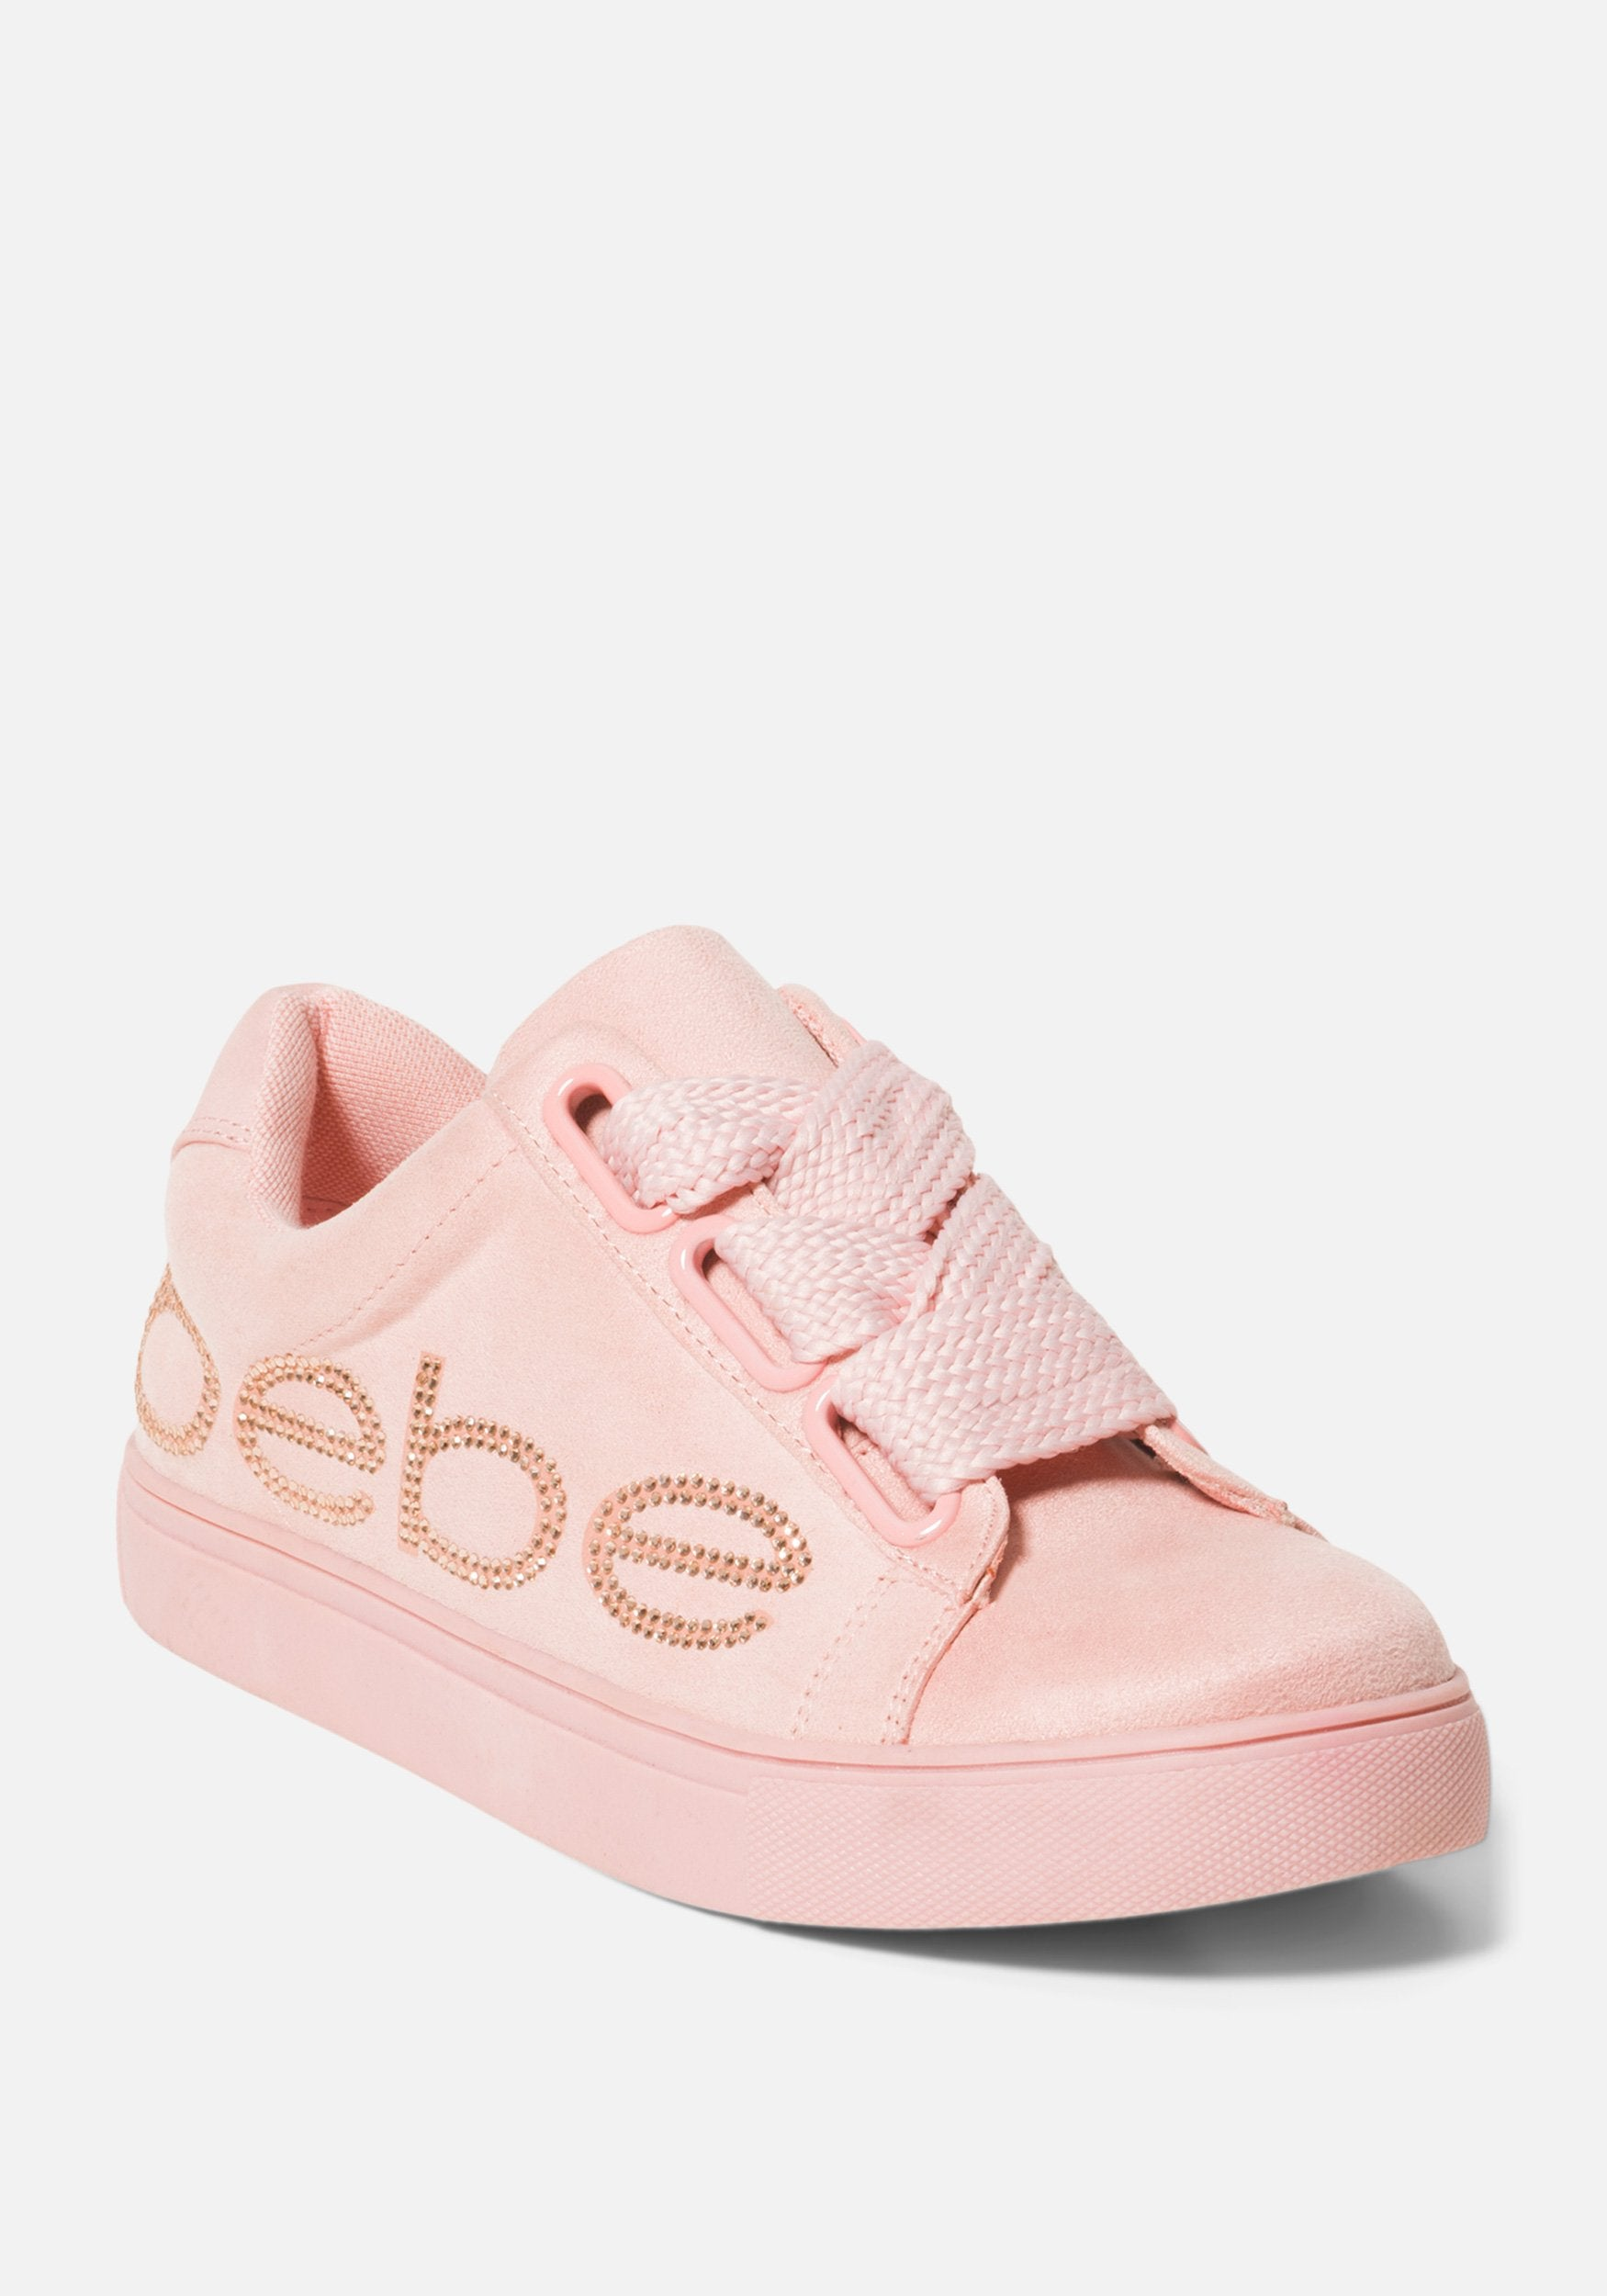 Women's Cabree Bebe Logo Sneakers, Size 6 in Pink Synthetic